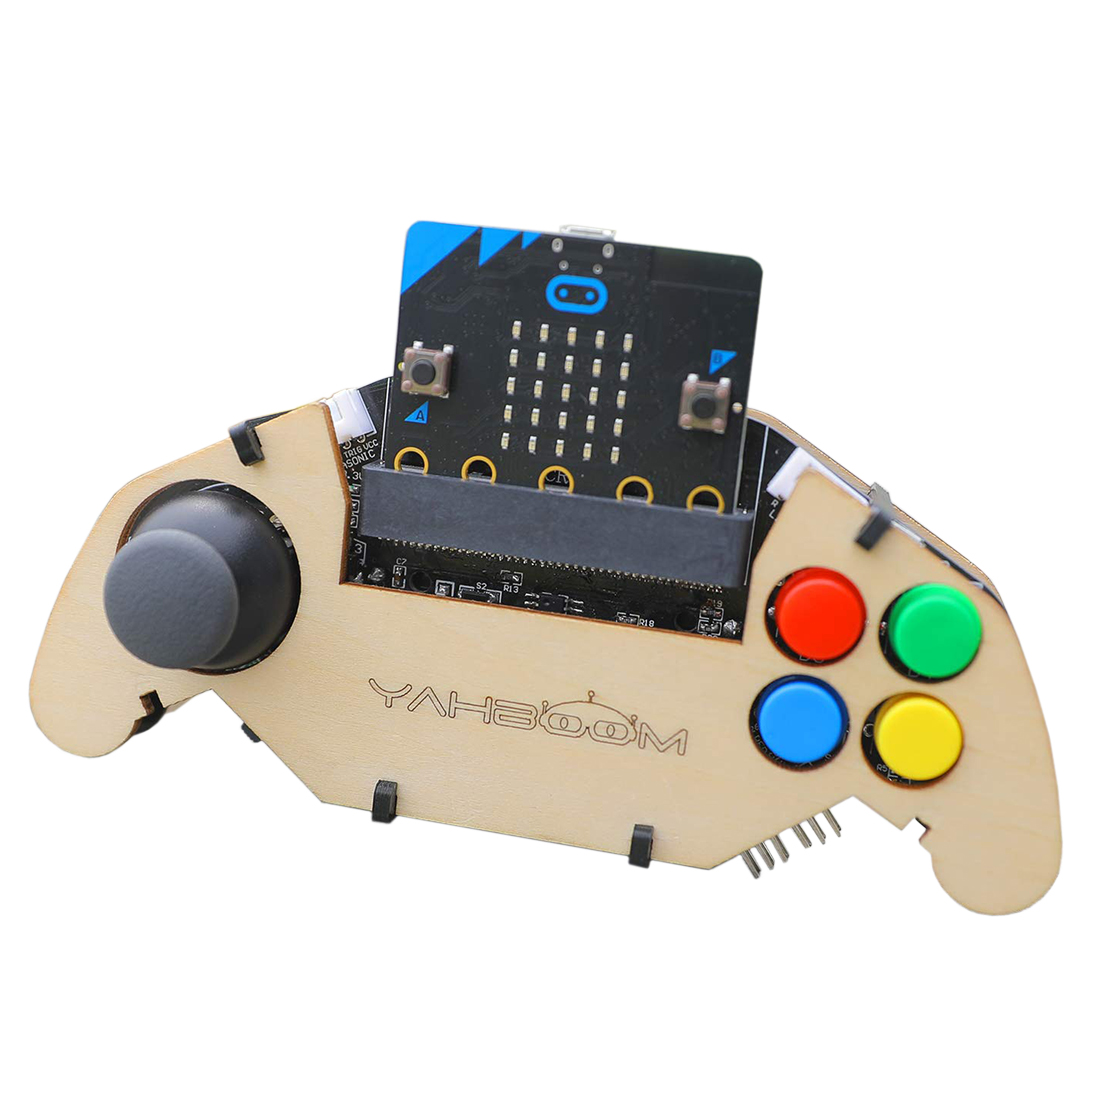 Micro:bit Gamepad Expansion Board Handle Robot Car Joystick STEM Toys Programming Game Controller (Without/With Micro:bit Board)